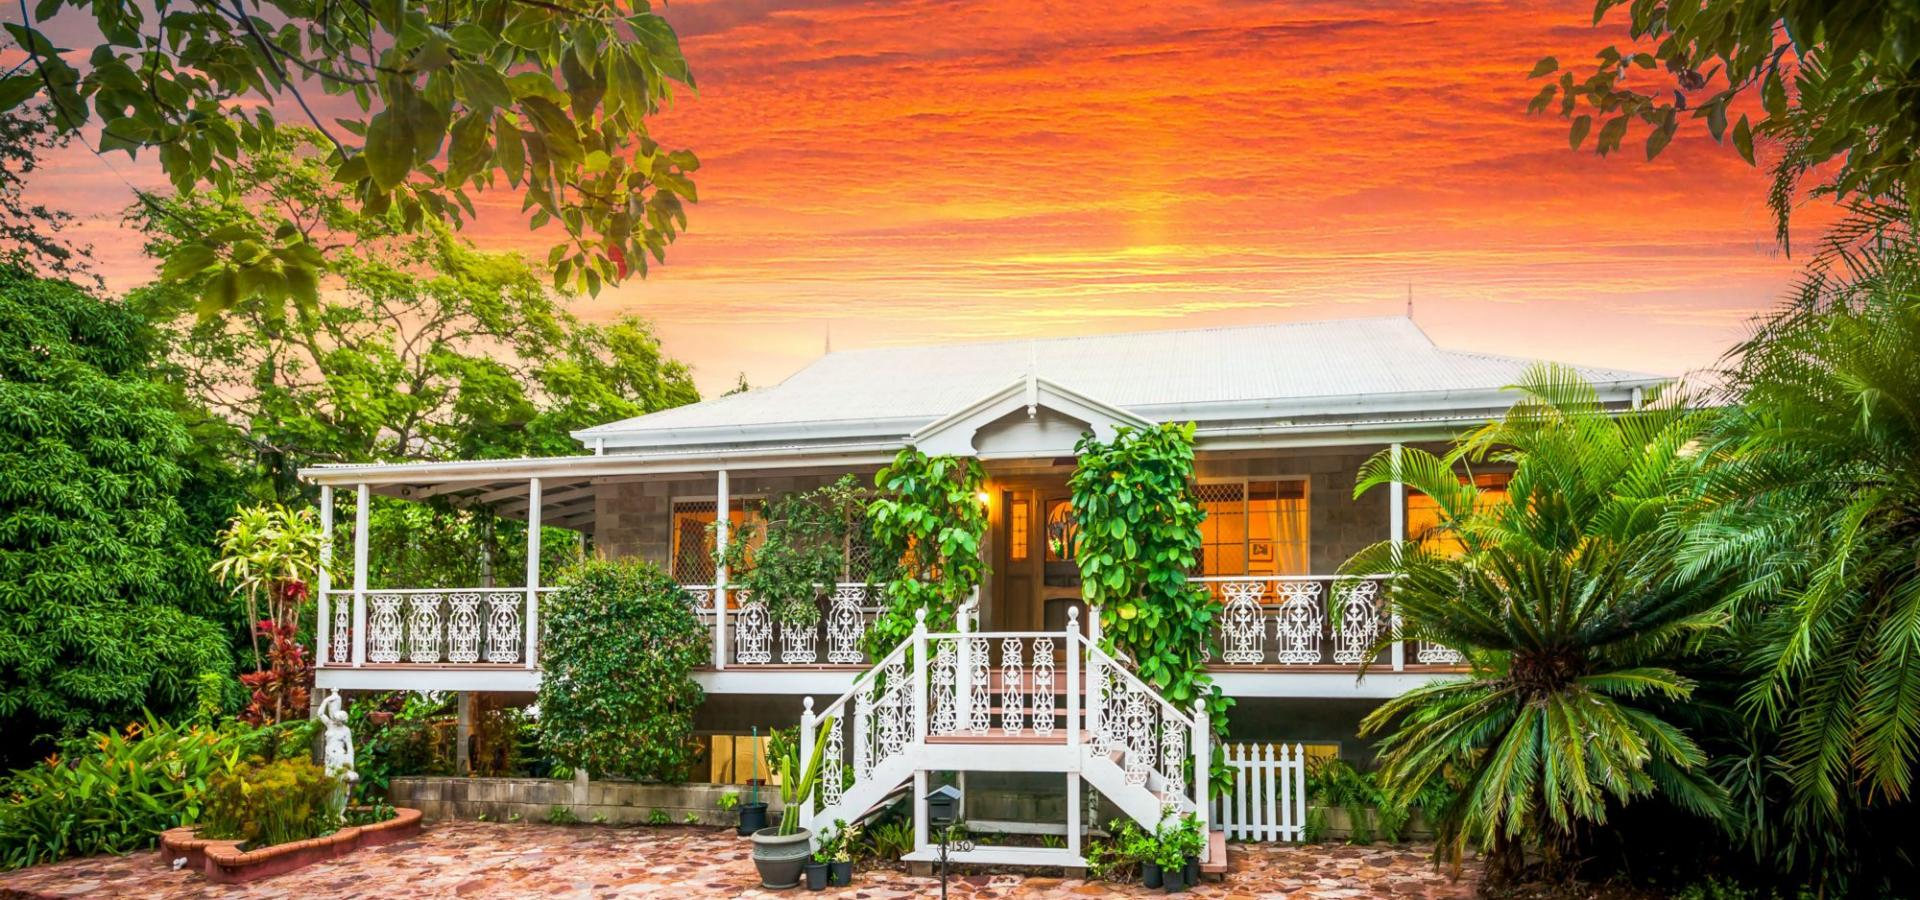 ACREAGE IN TOWN WITH A CLASSIC QUEENSLANDER